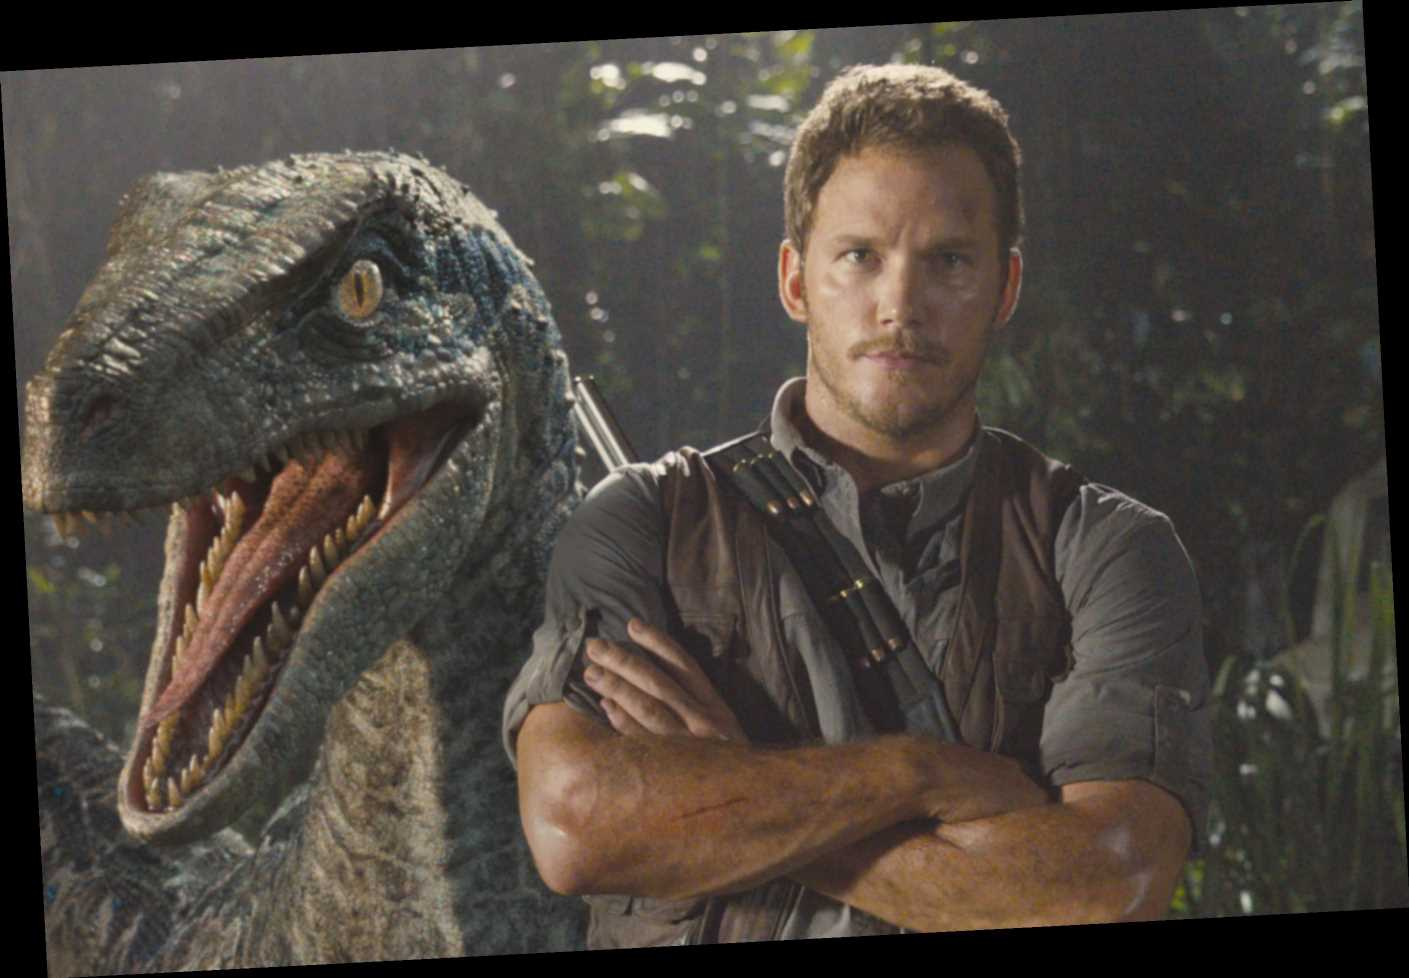 Jurassic World: Dominion delayed until 2022 after cast members test positive for coronavirus